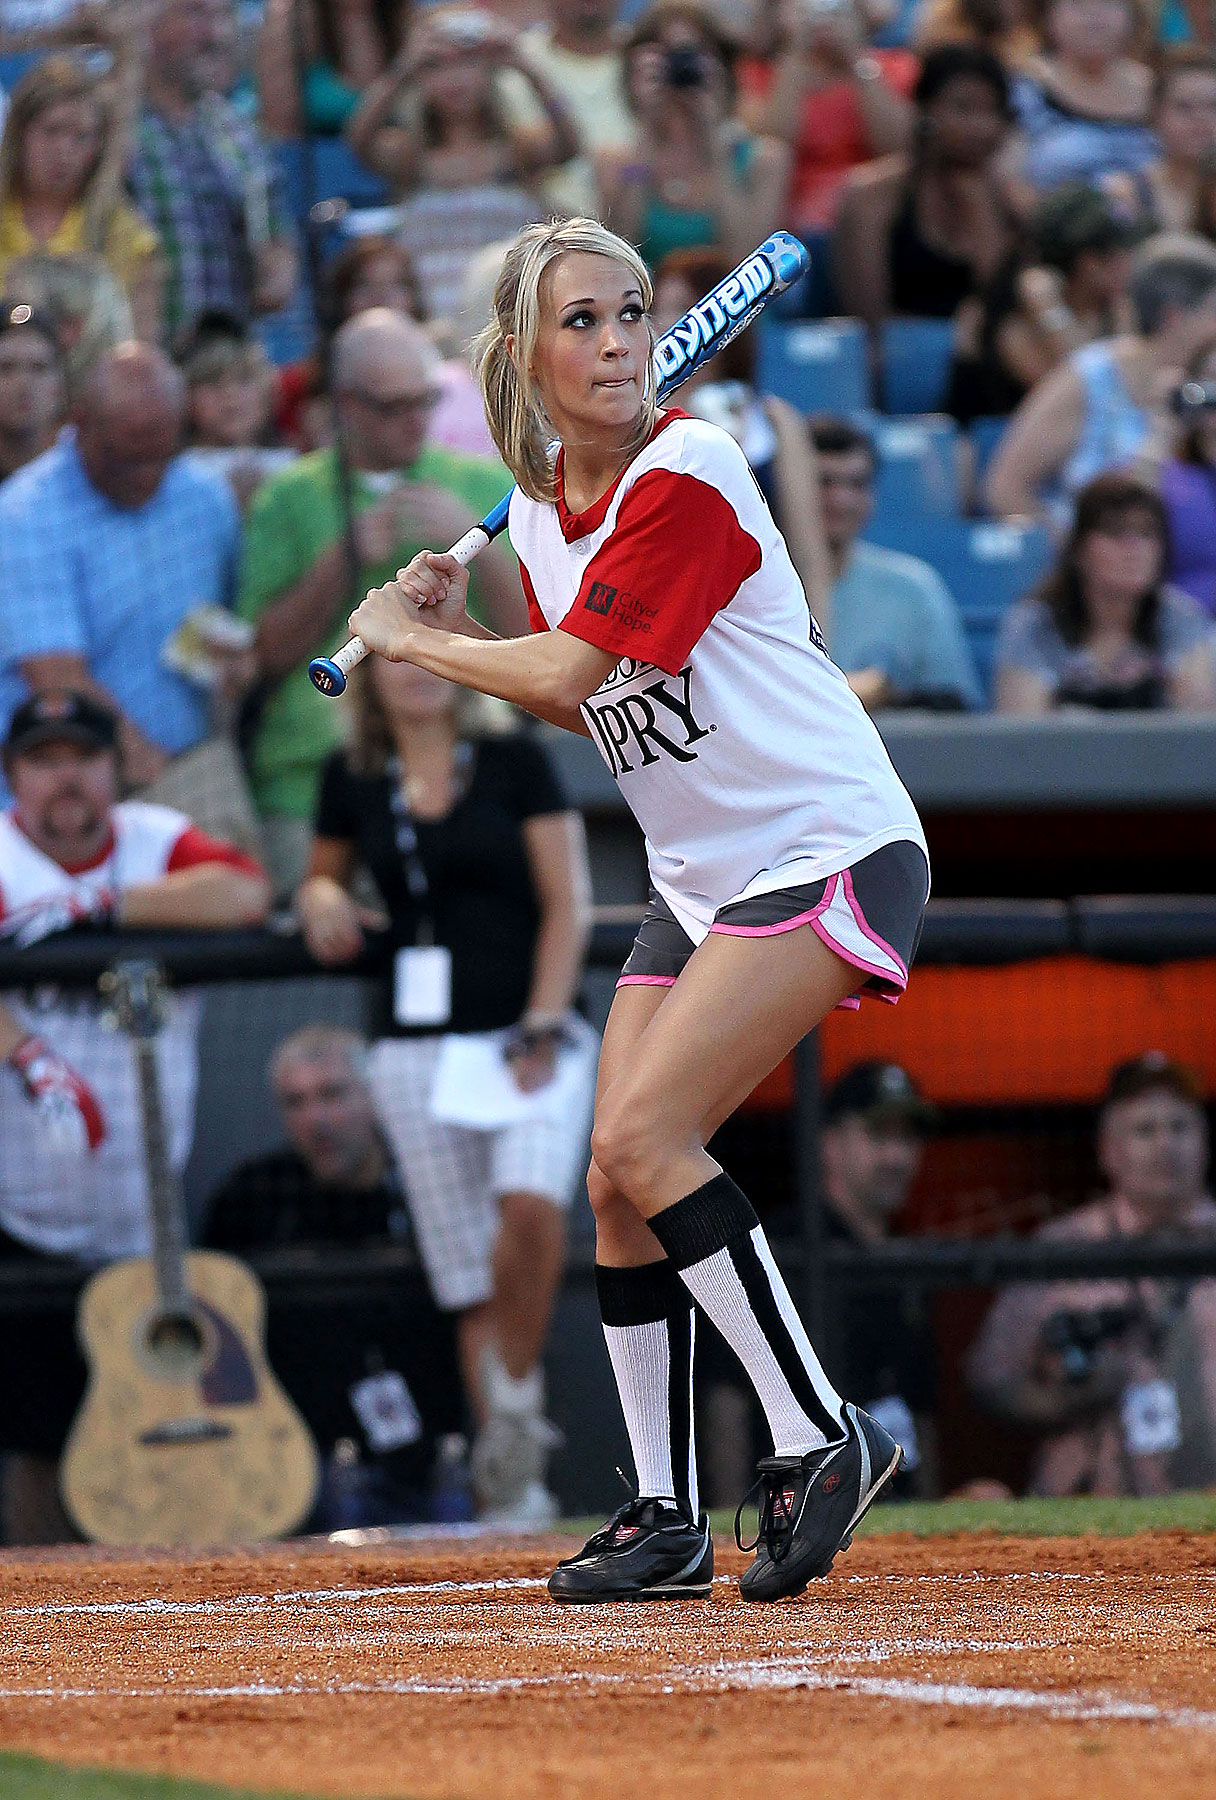 Carrie Underwood Steps Up To the Plate For Charity (PHOTOS)